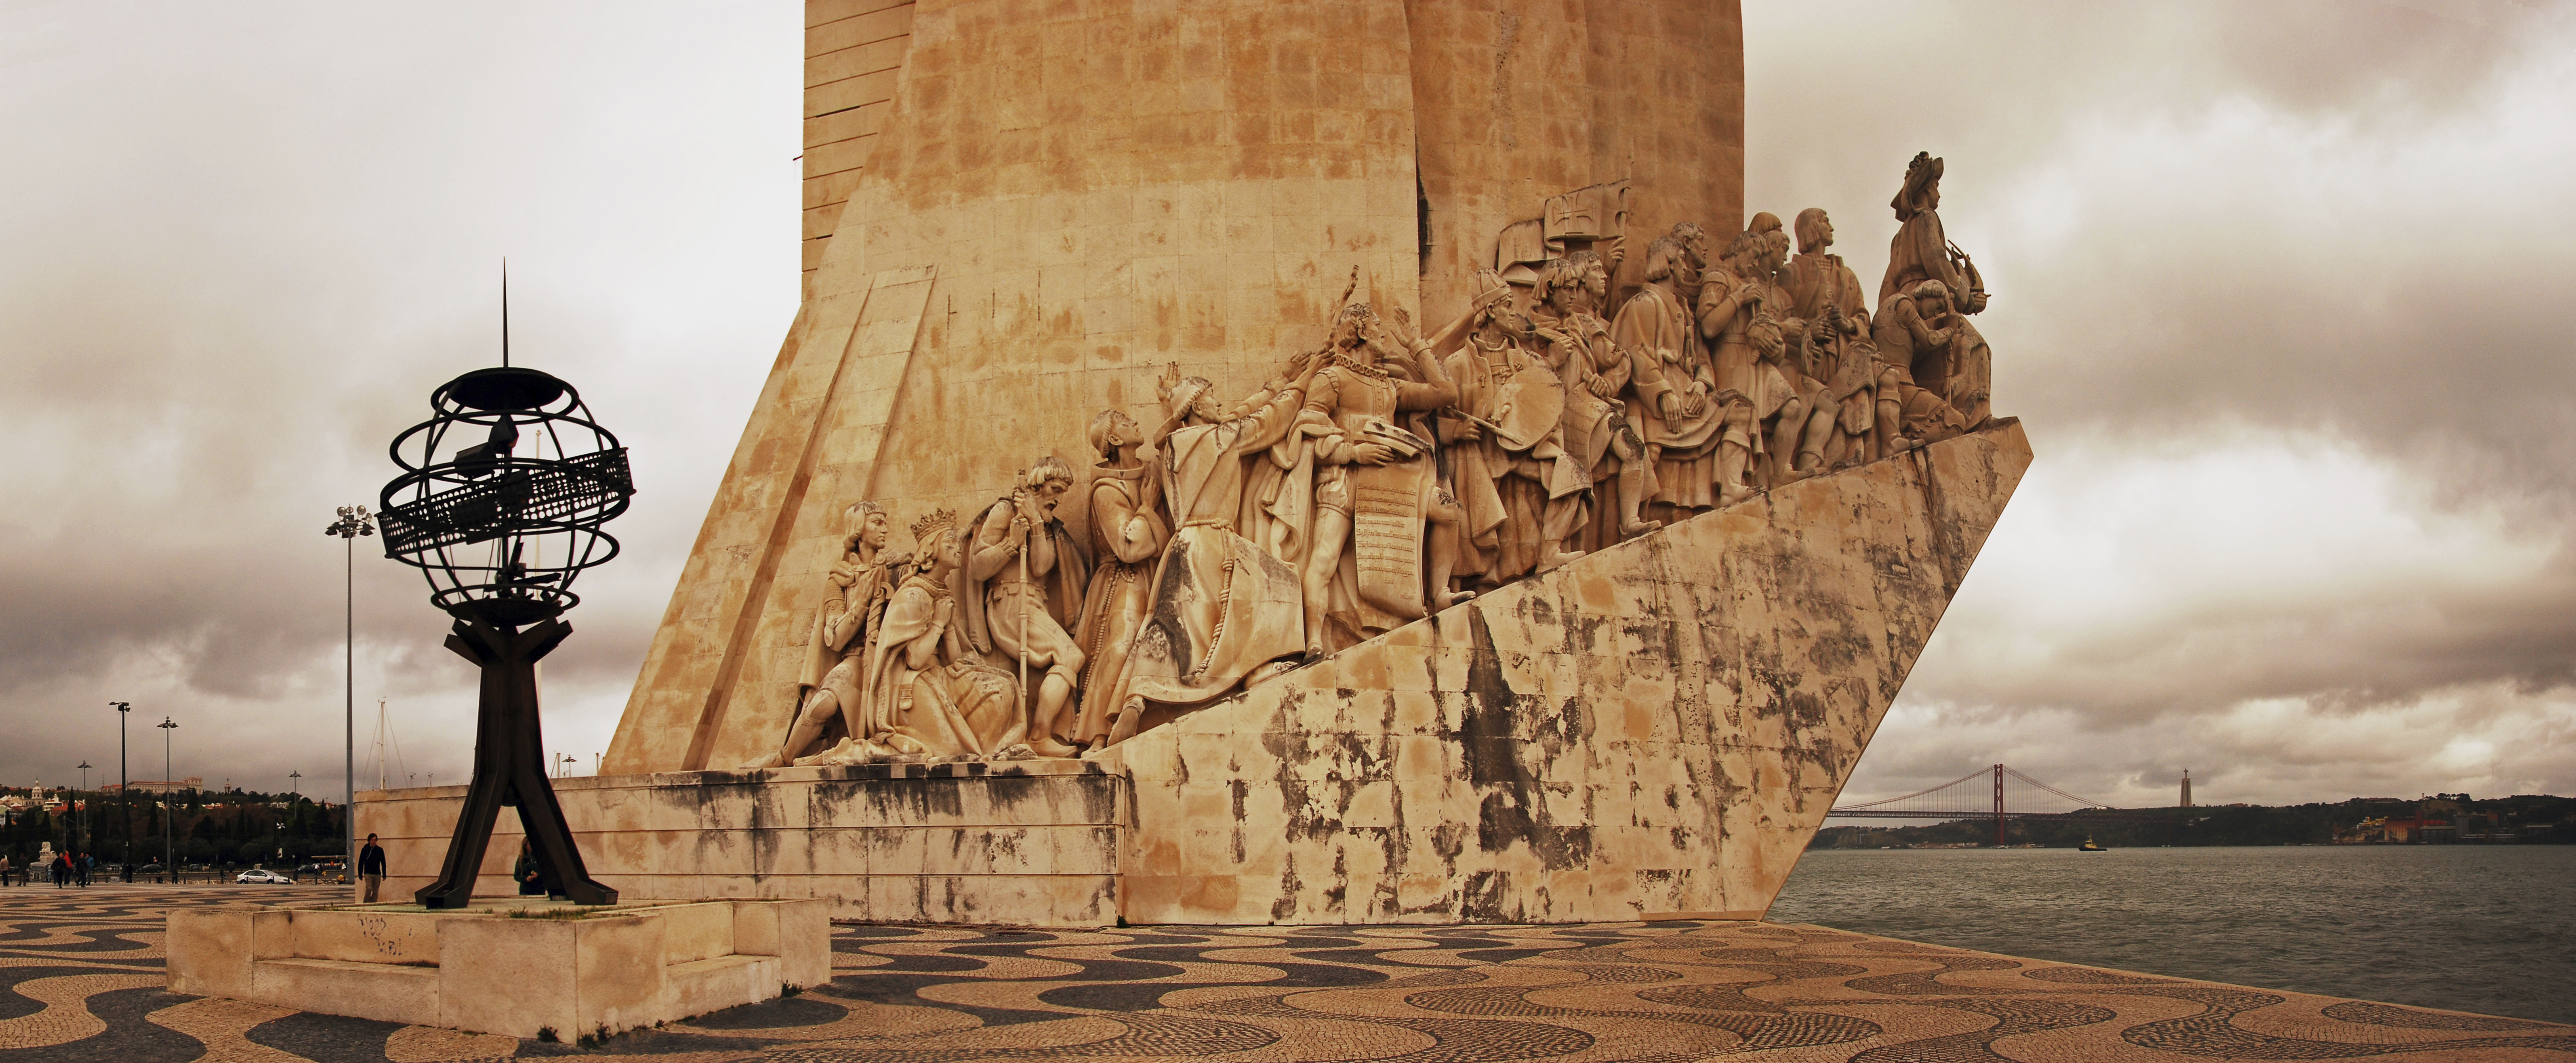 The Monument to the Discoveries - most famous statues